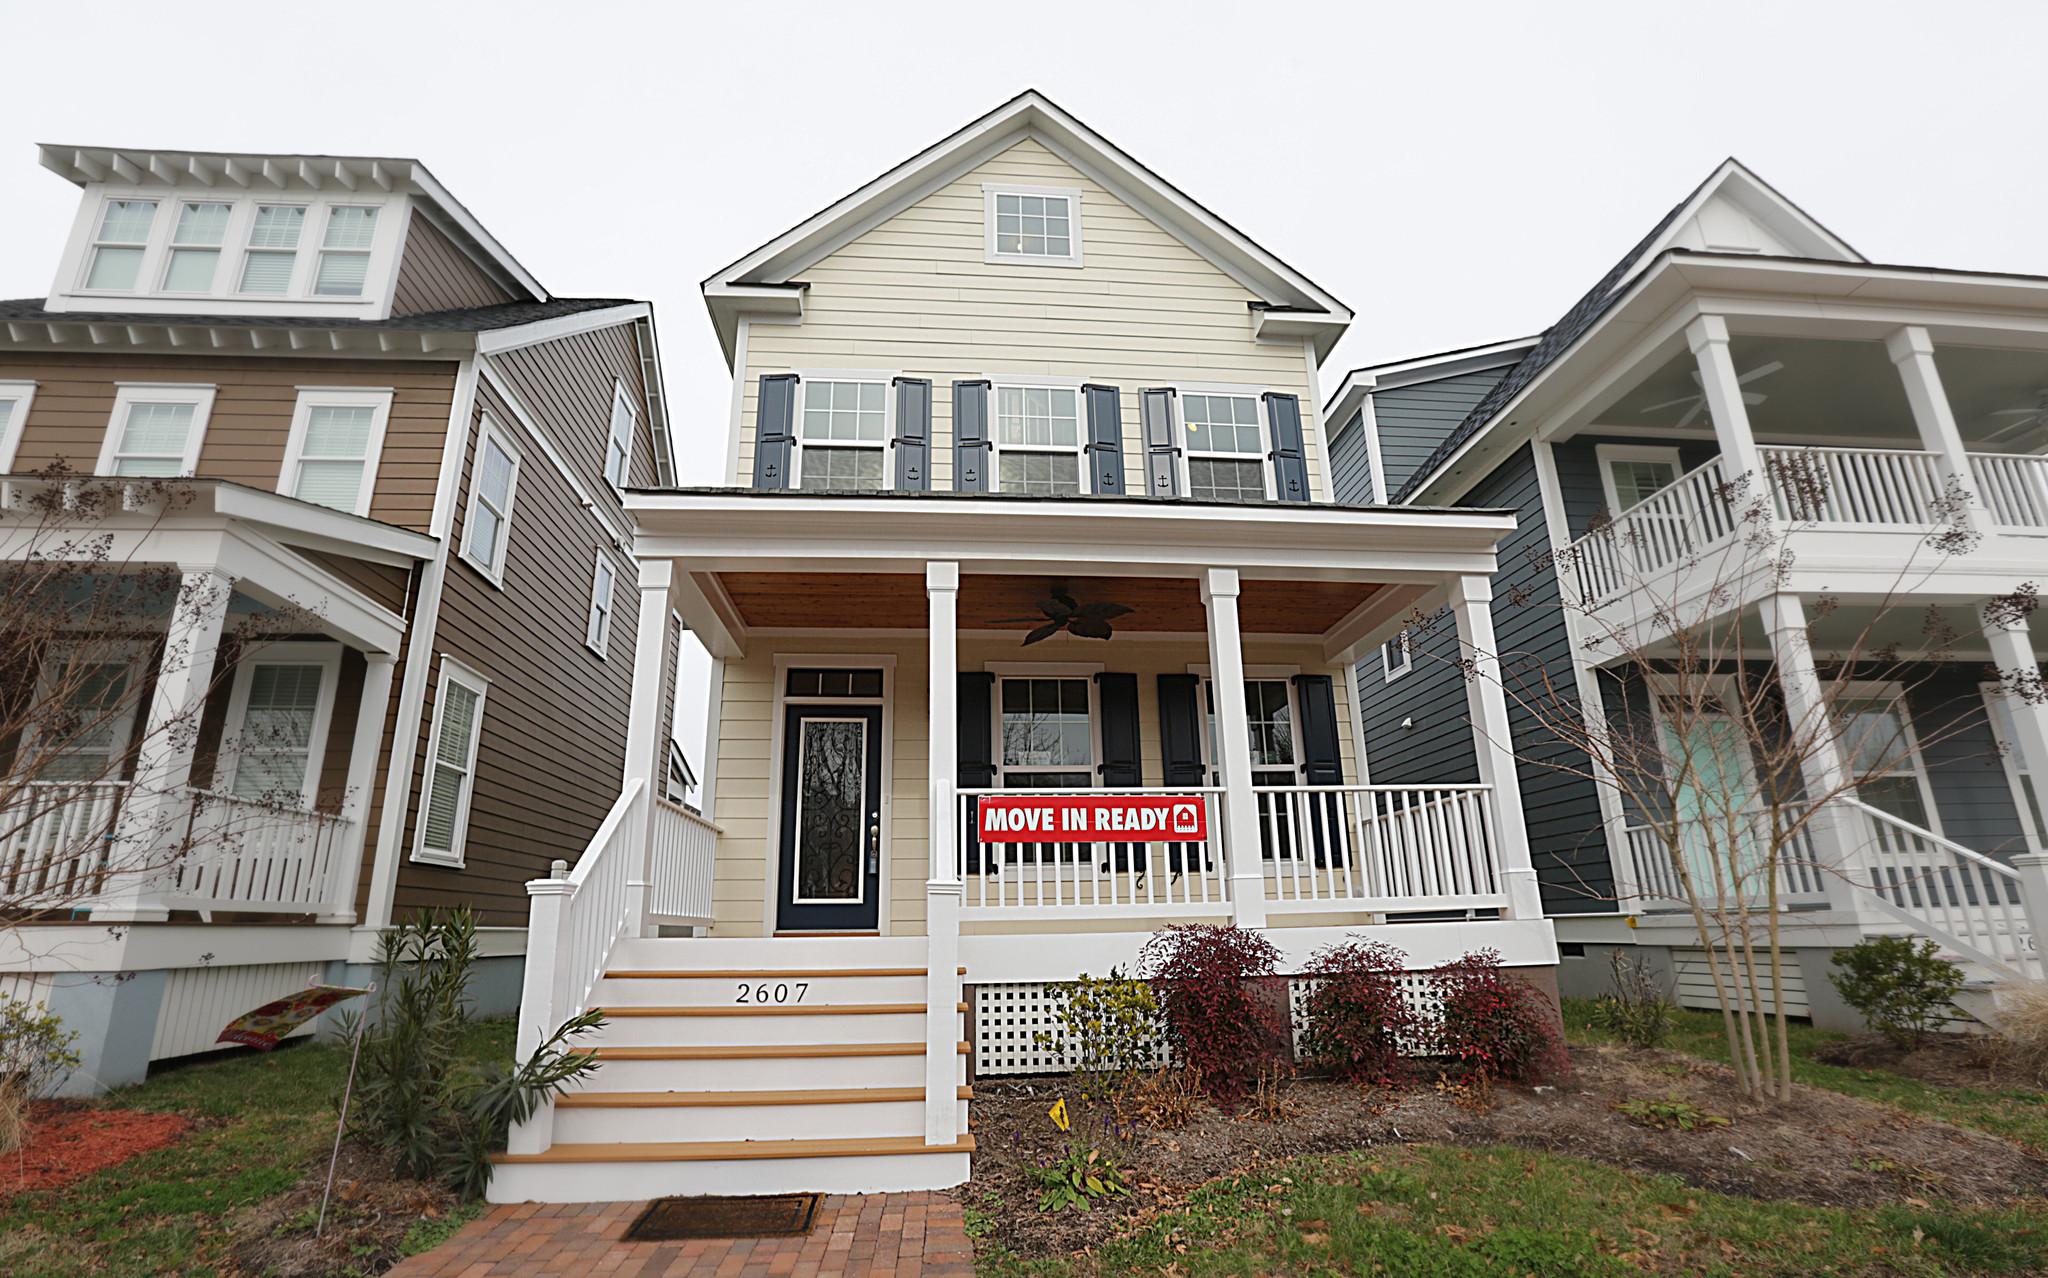 Richmond couple chooses Hampton home on HGTV show - Daily Press